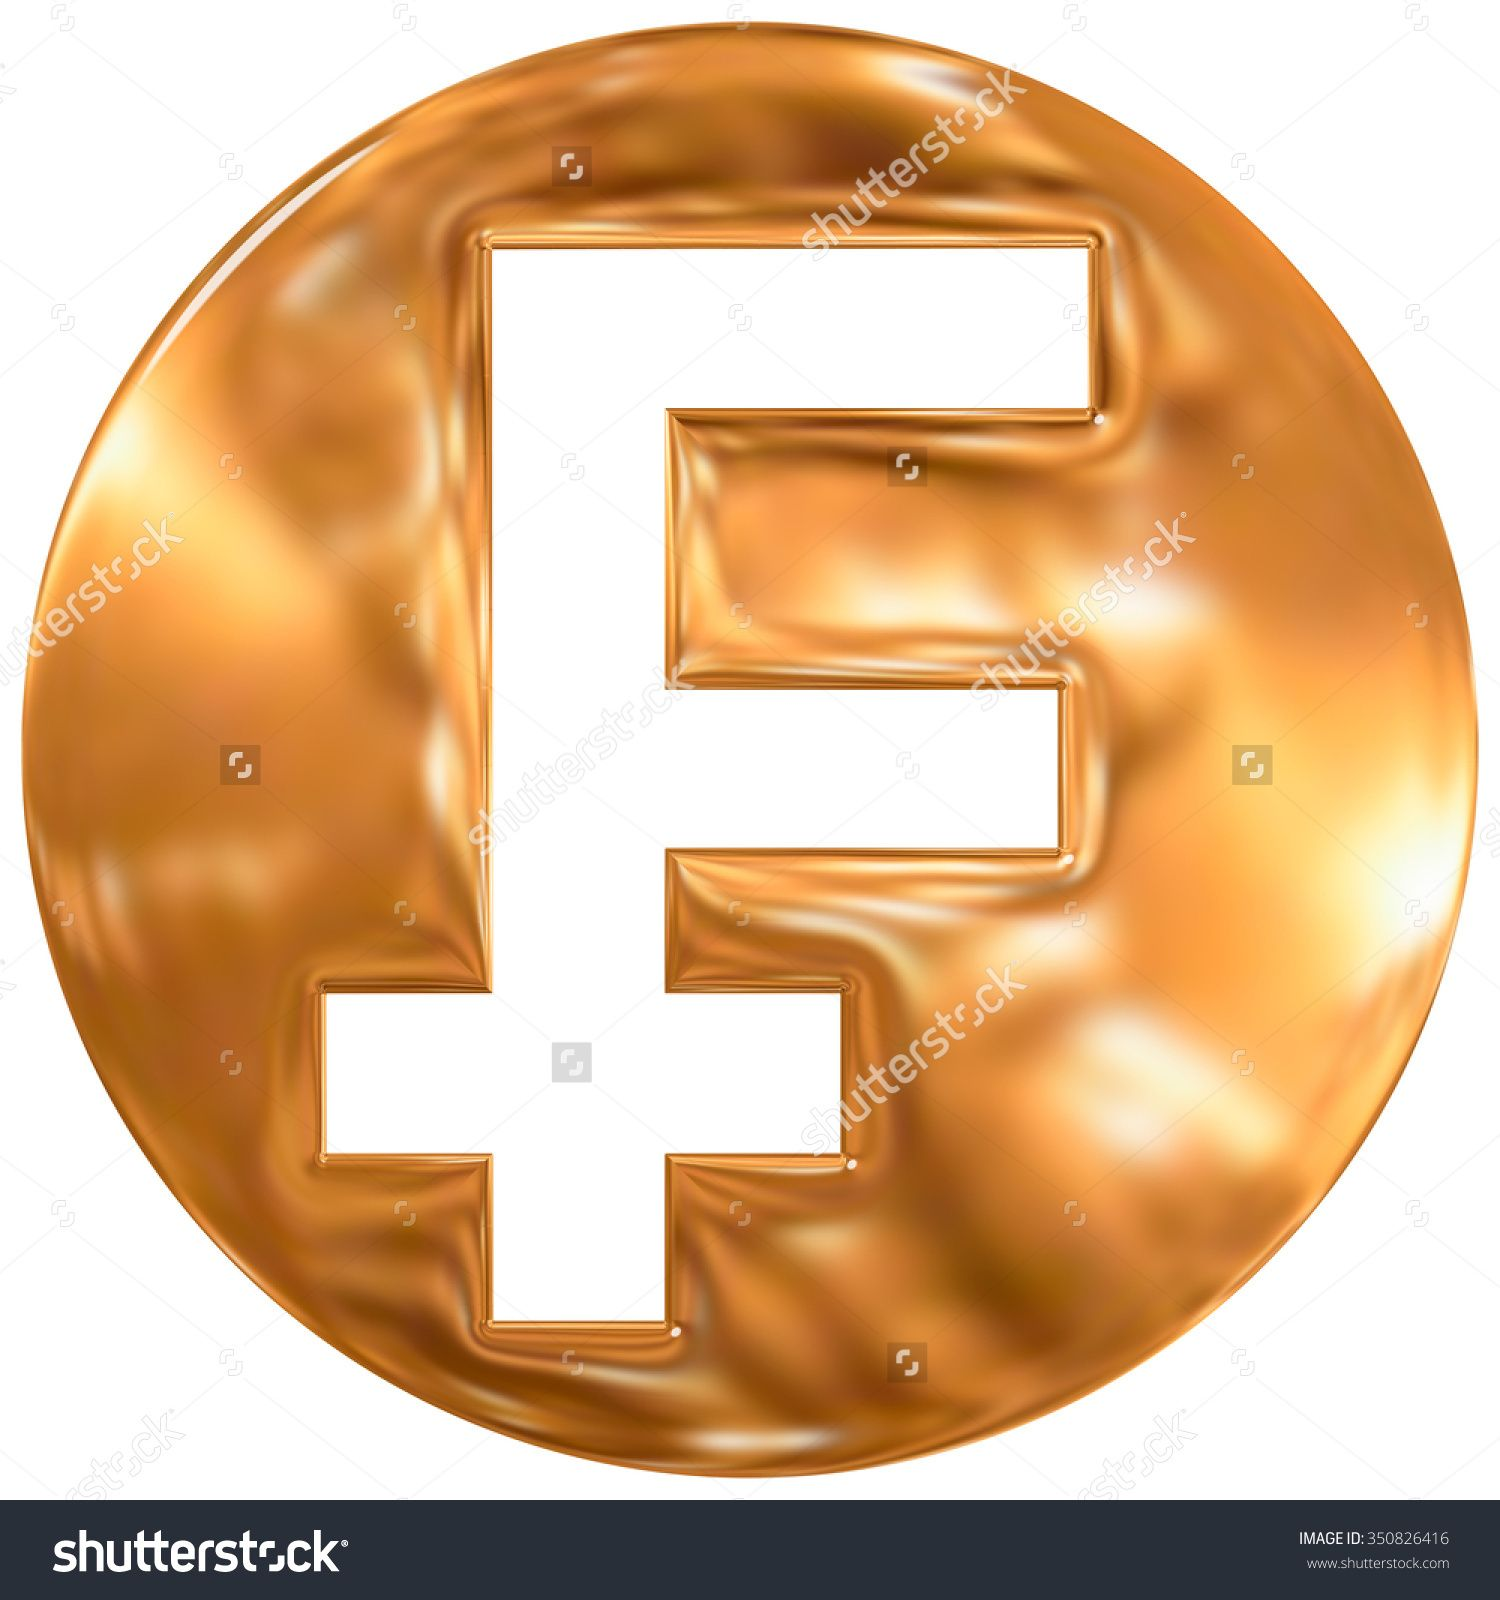 Swiss Franc Currency Symbol Graphic Design Pinterest Currency